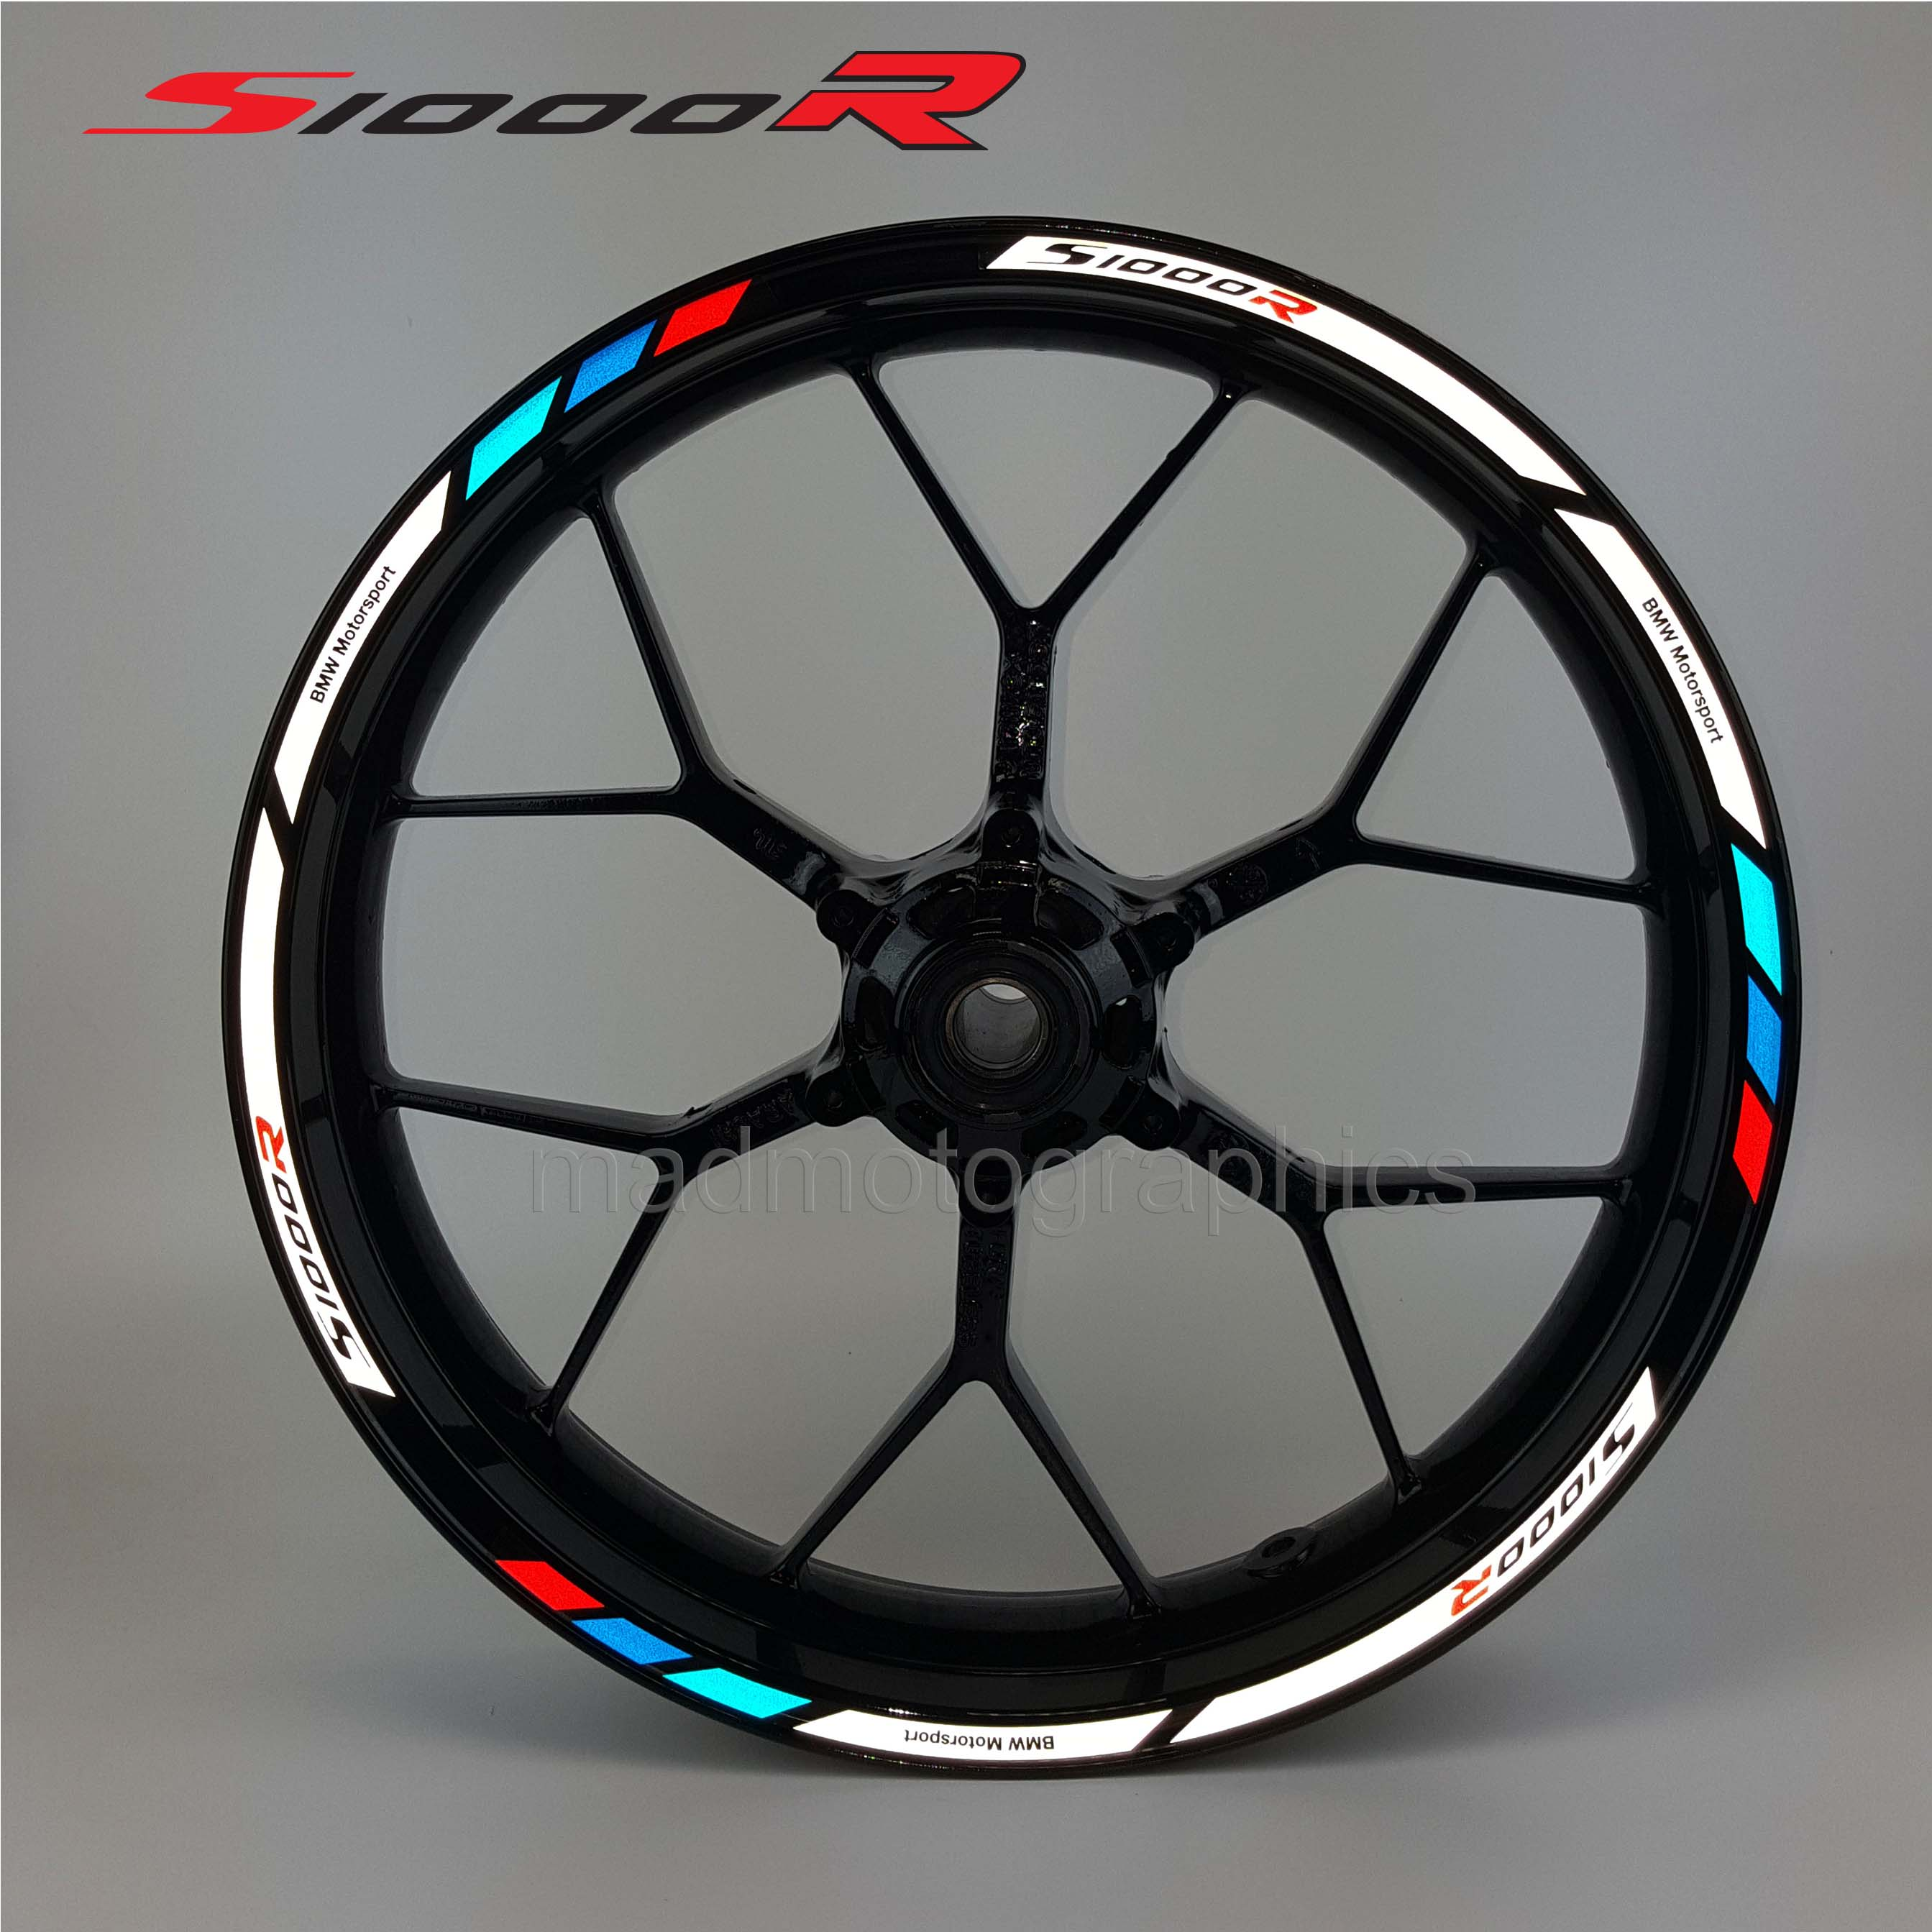 Bmw S1000r Motorcycle Wheel Decals 12 Rim Stickers Laminated Set S1000 R Stripes Vehicle Parts Accessories Motorcycle Tuning Styling